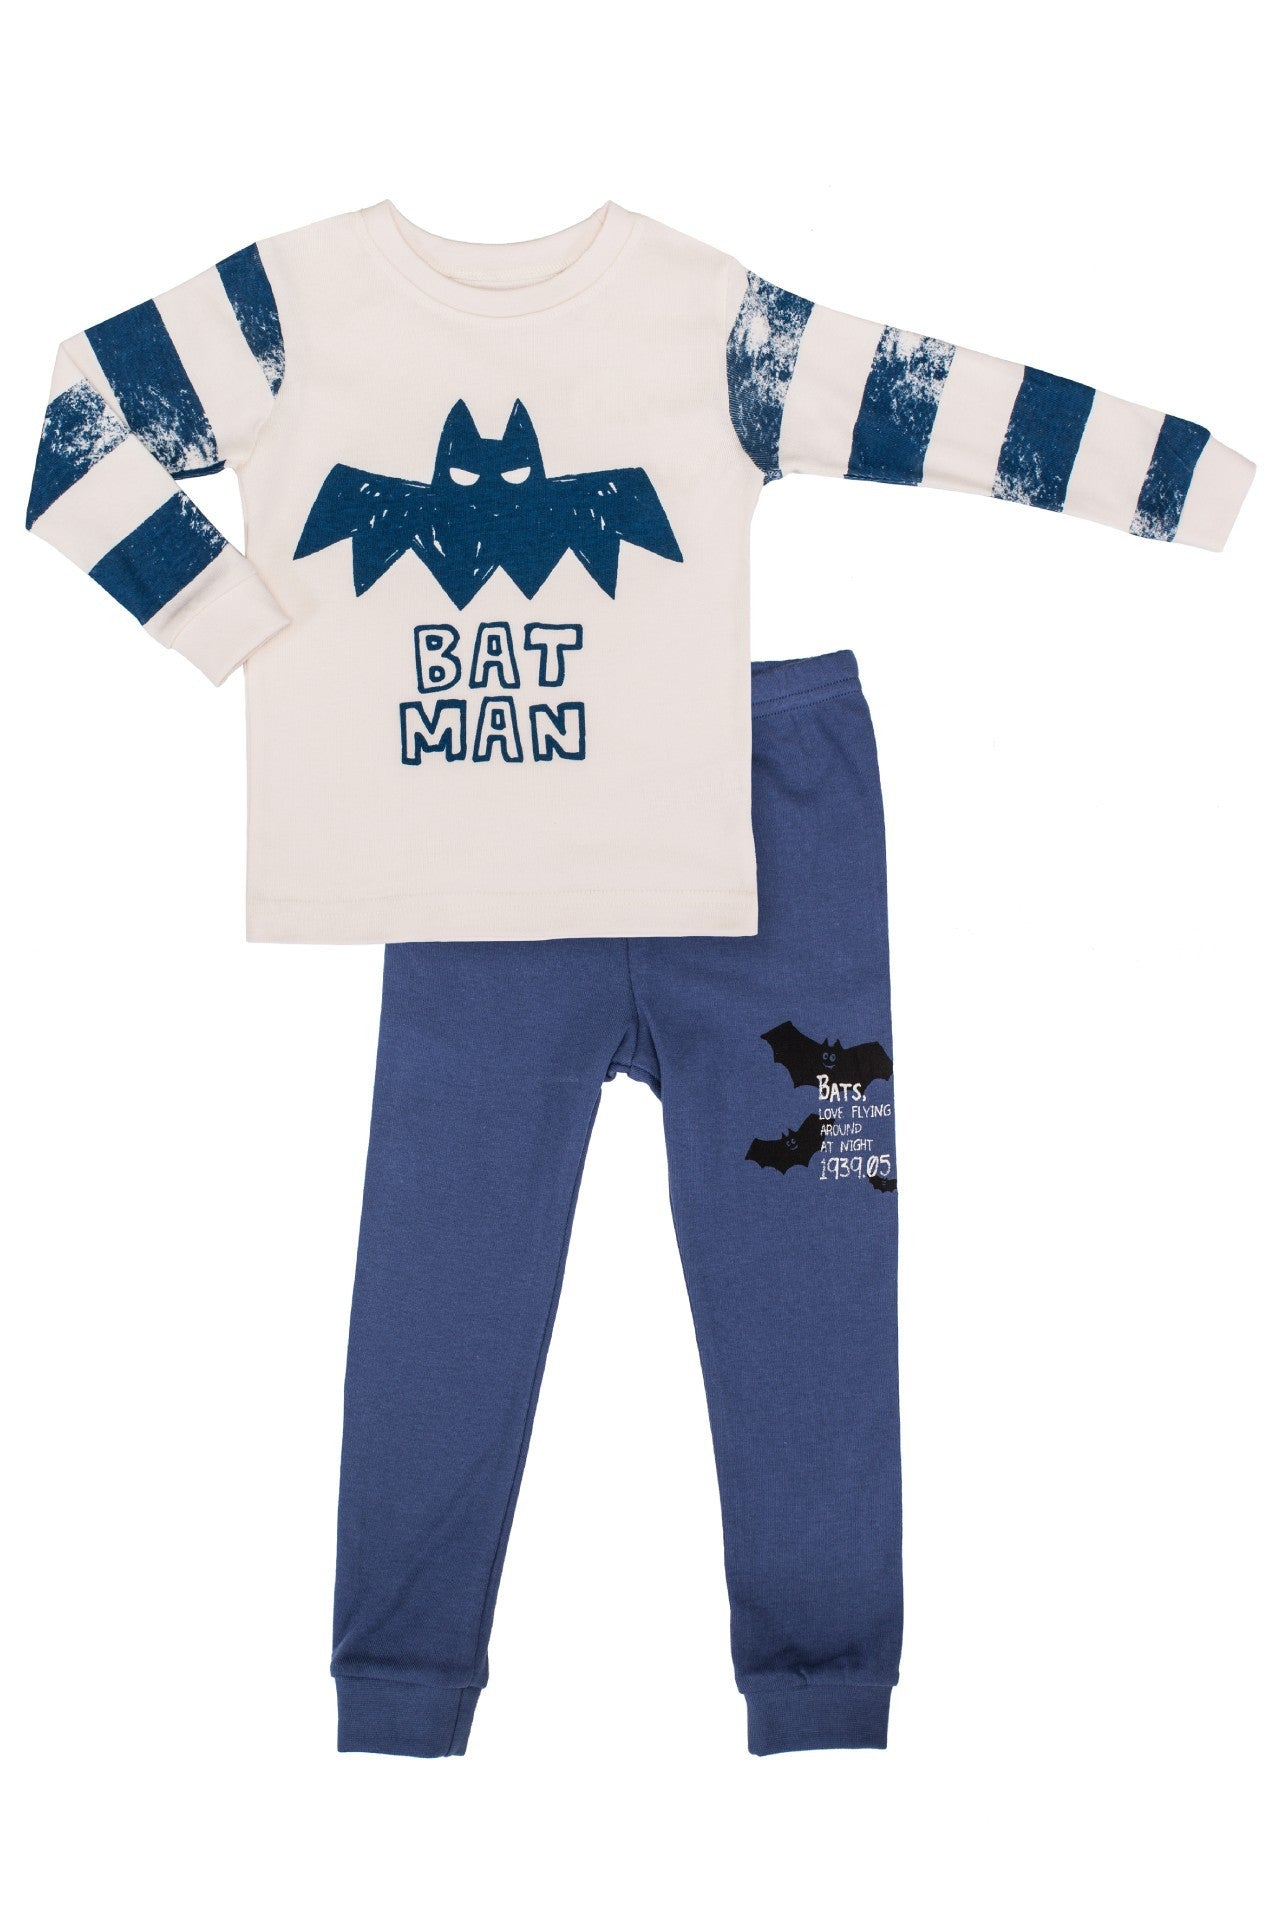 30s Cotton Count - Lightest Pajamas - Bat Boy